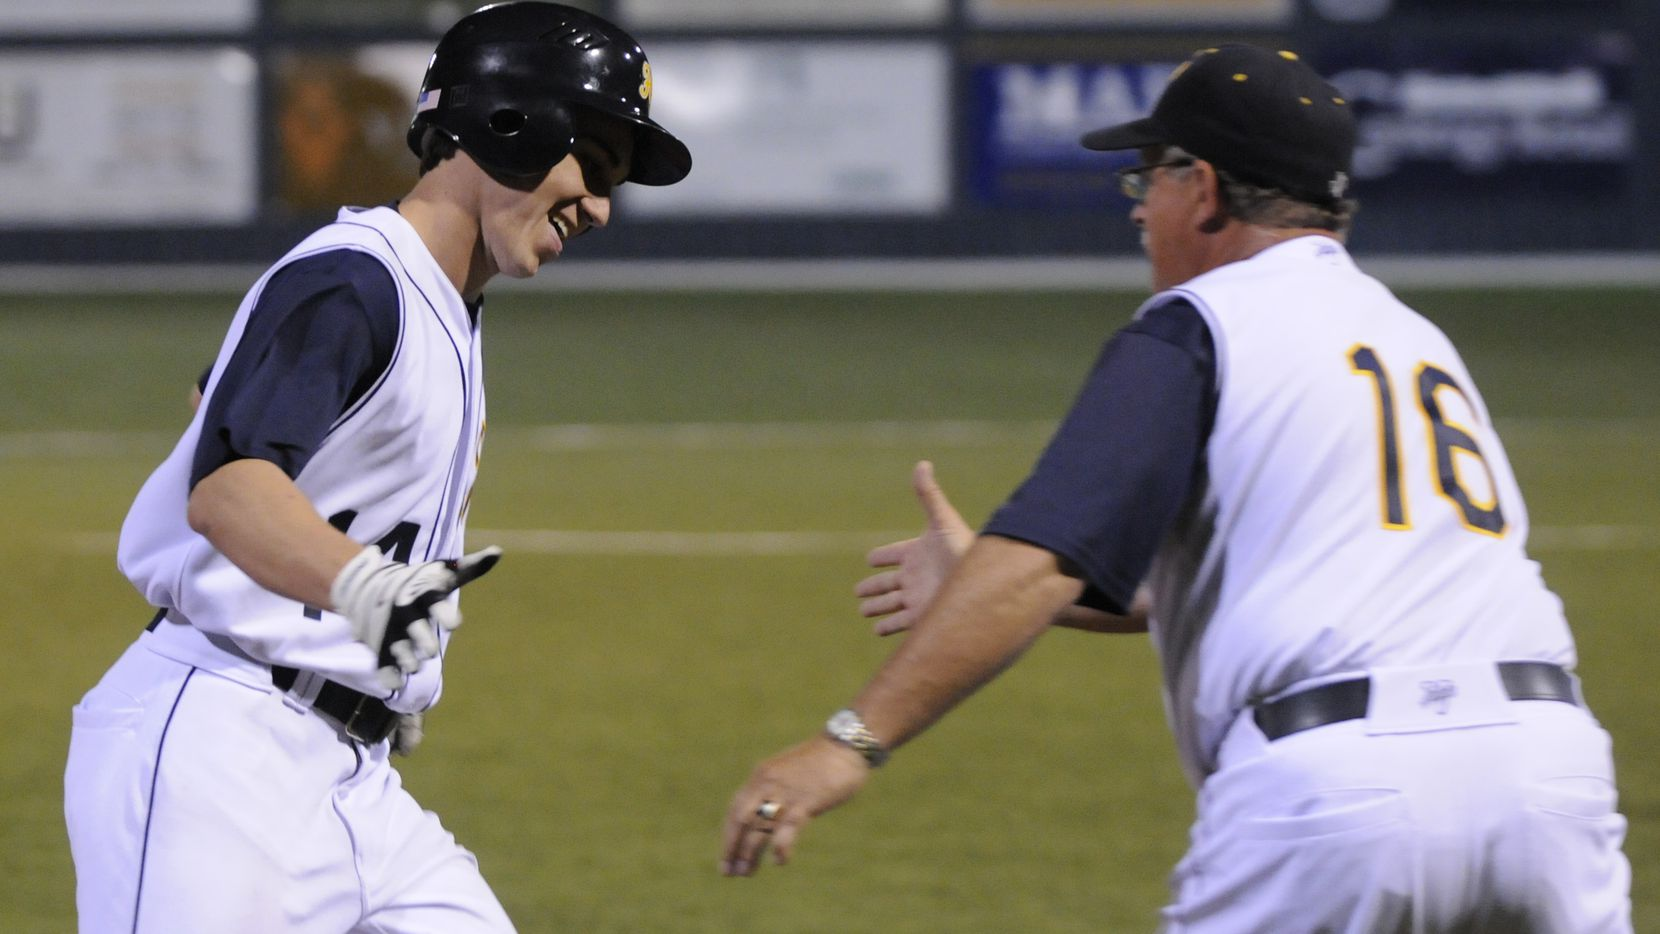 Highland Park's Jake Howeth, left, extends a hand to head baseball coach Fred Oliver after hitting a home run against Wylie High School.